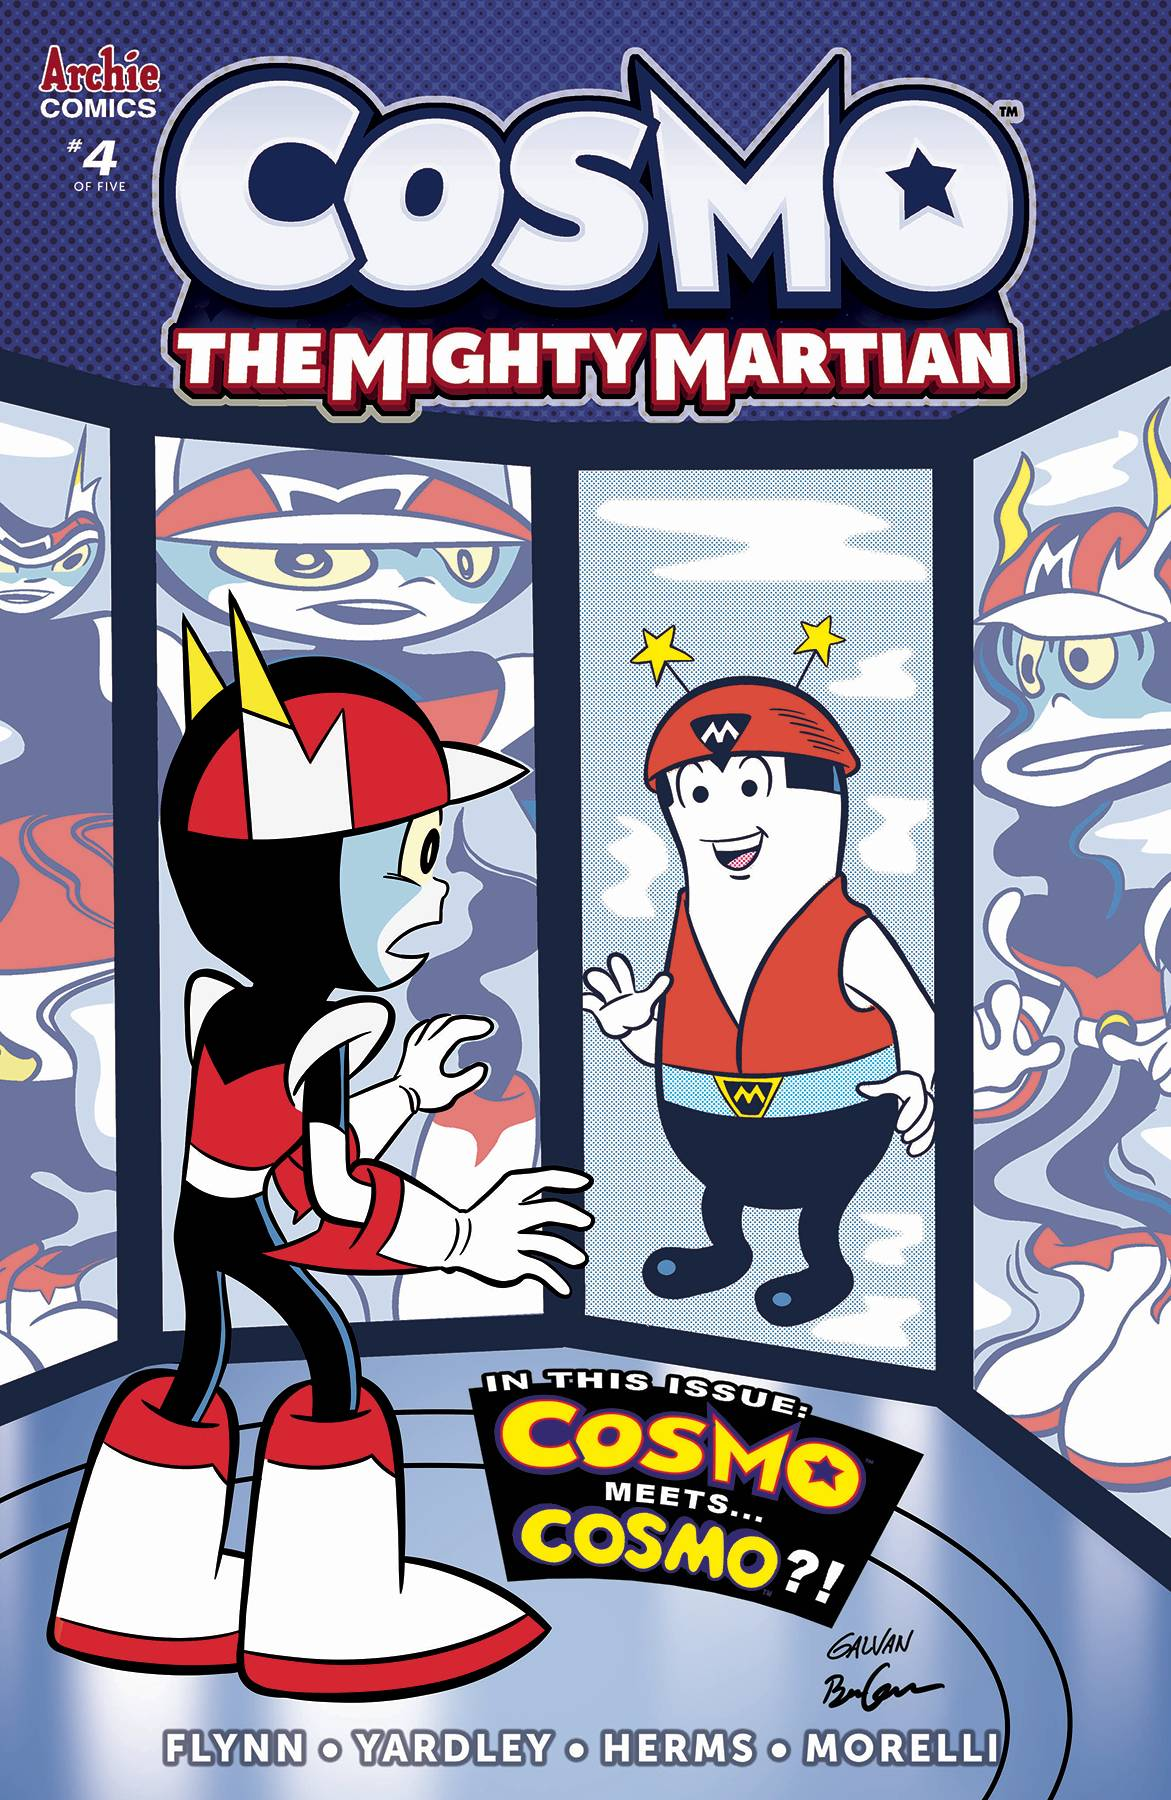 COSMO MIGHTY MARTIAN #4 (OF 5) CVR B GALVAN